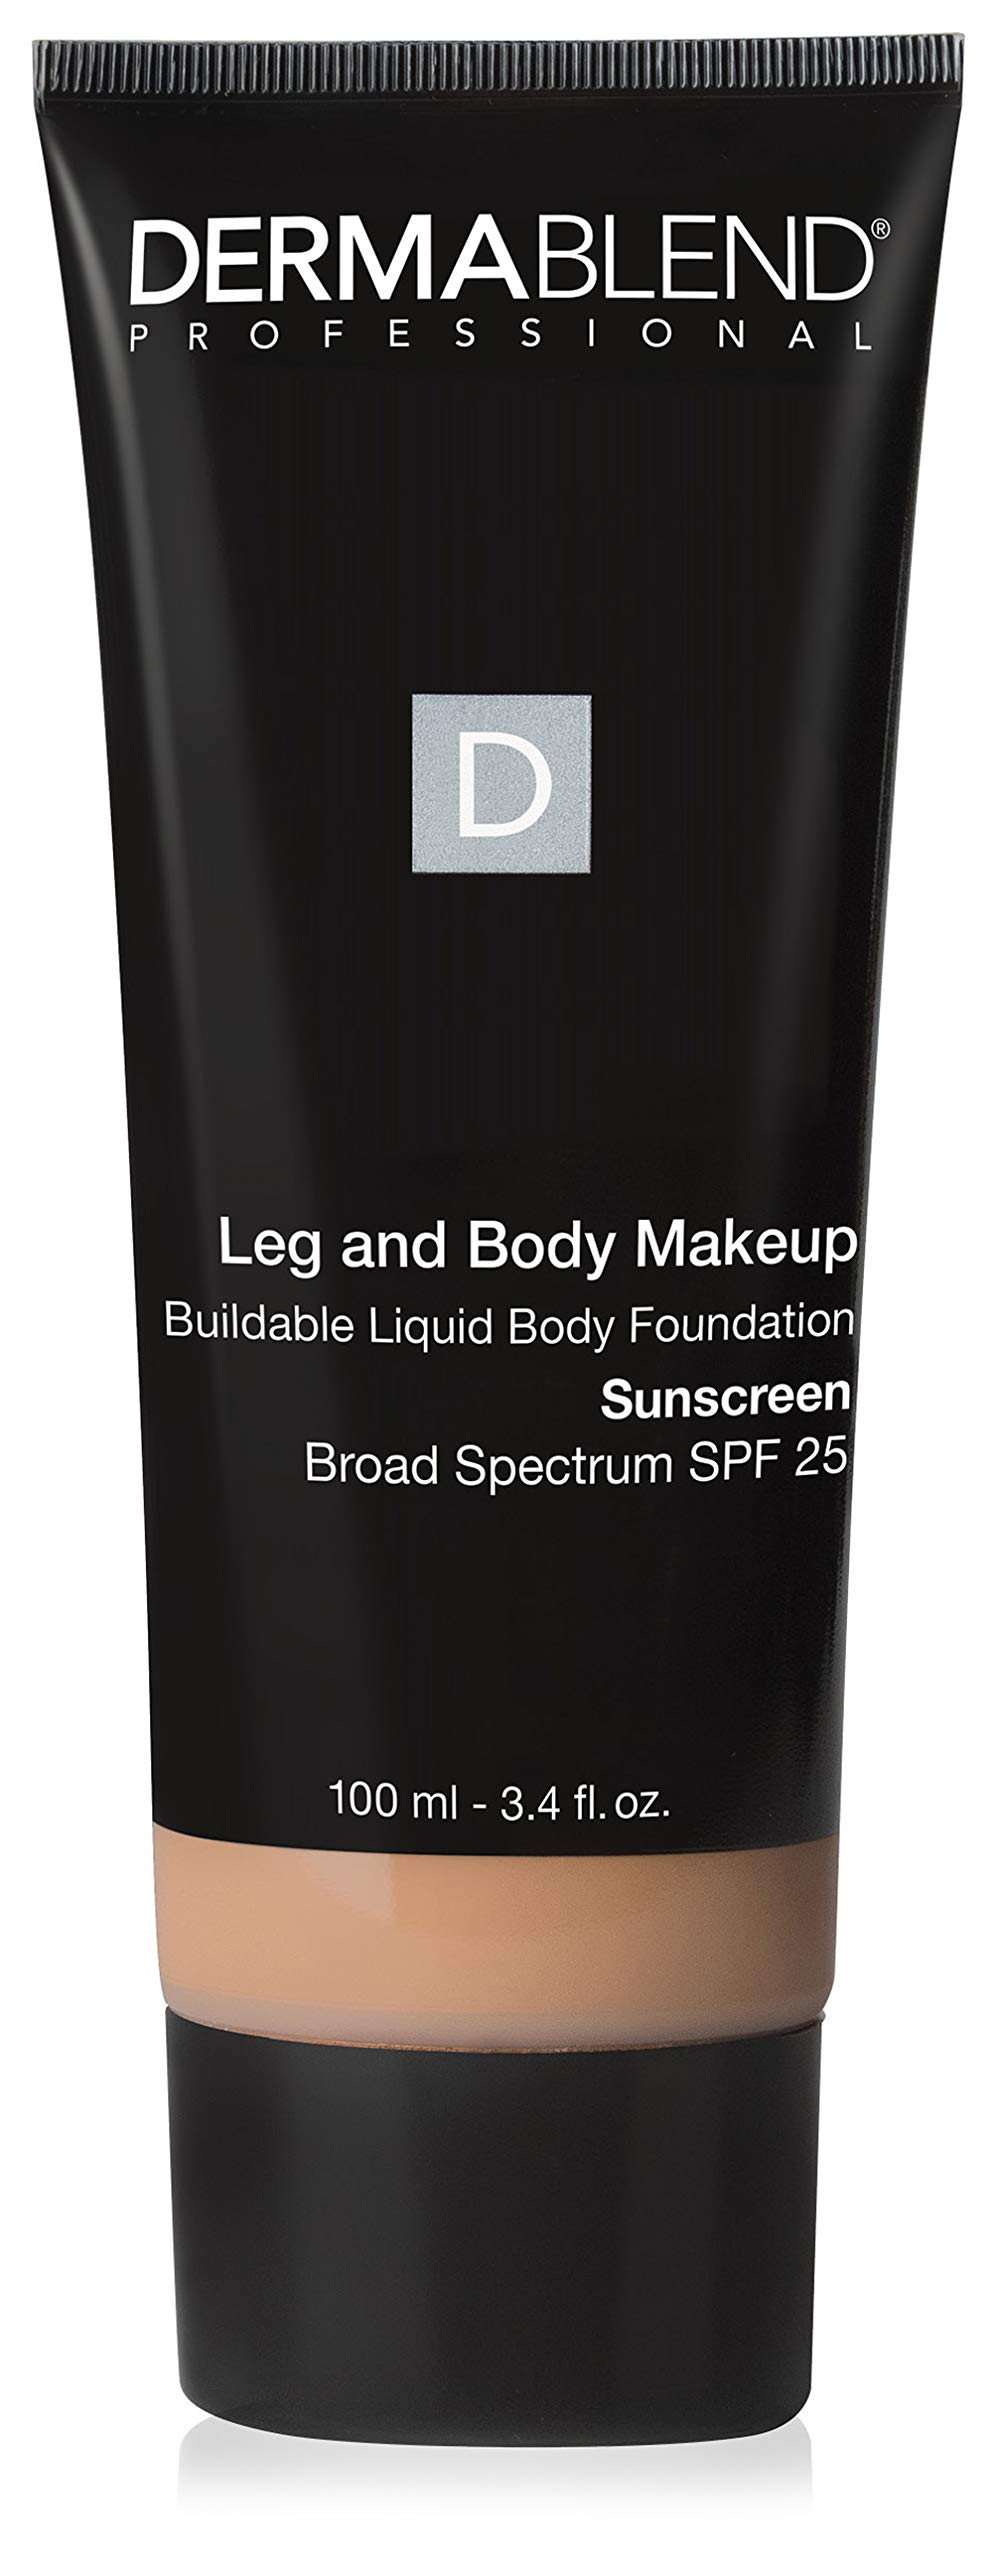 Dermablend Leg and Body Makeup, with SPF 25. Skin Perfecting Body Foundation for Flawless Legs with a Smooth, Even Tone Finish, 3.4 Fl. Oz.